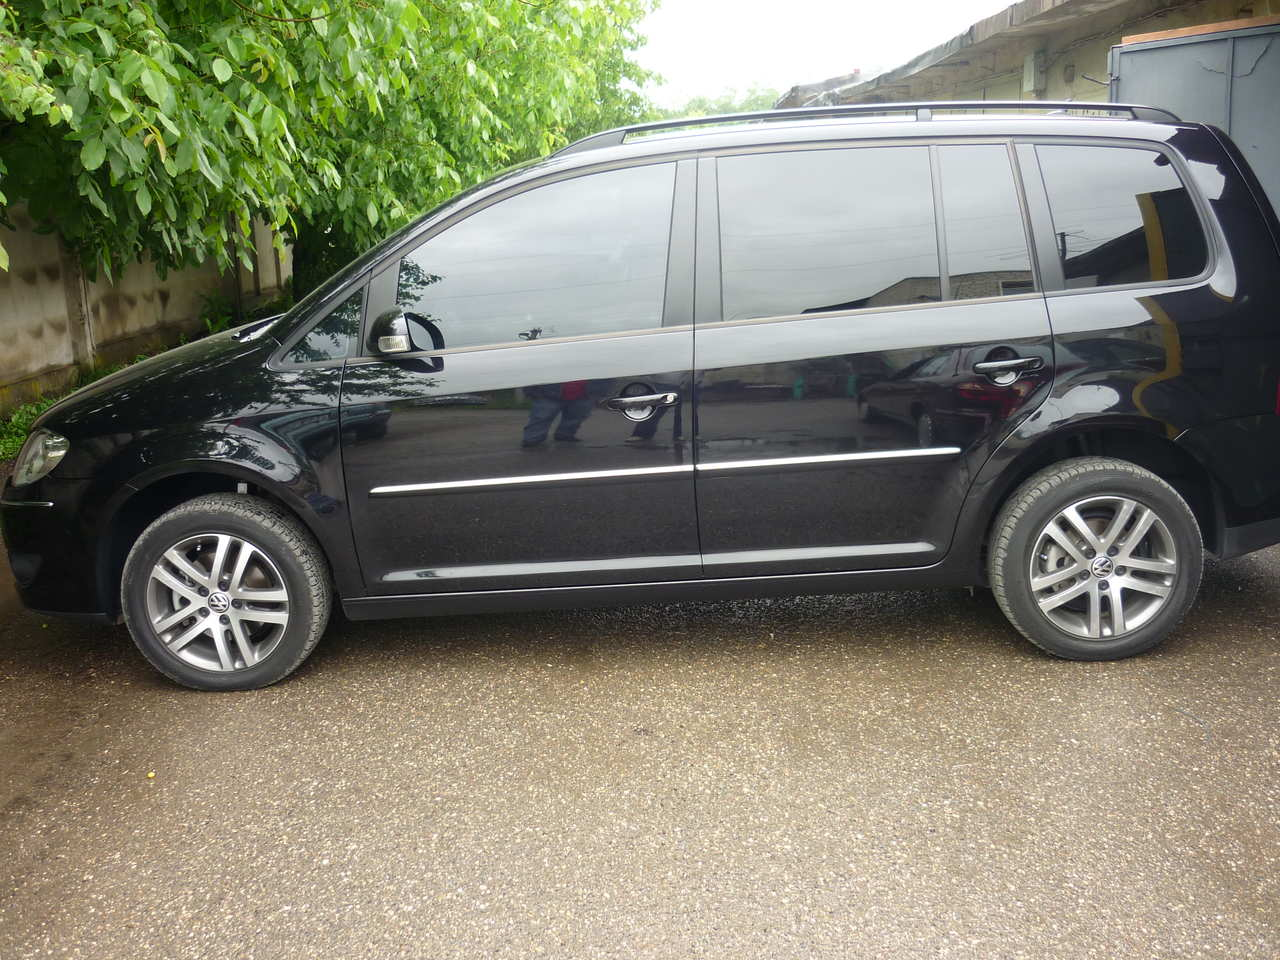 2008 volkswagen touran pictures gasoline ff automatic for sale. Black Bedroom Furniture Sets. Home Design Ideas